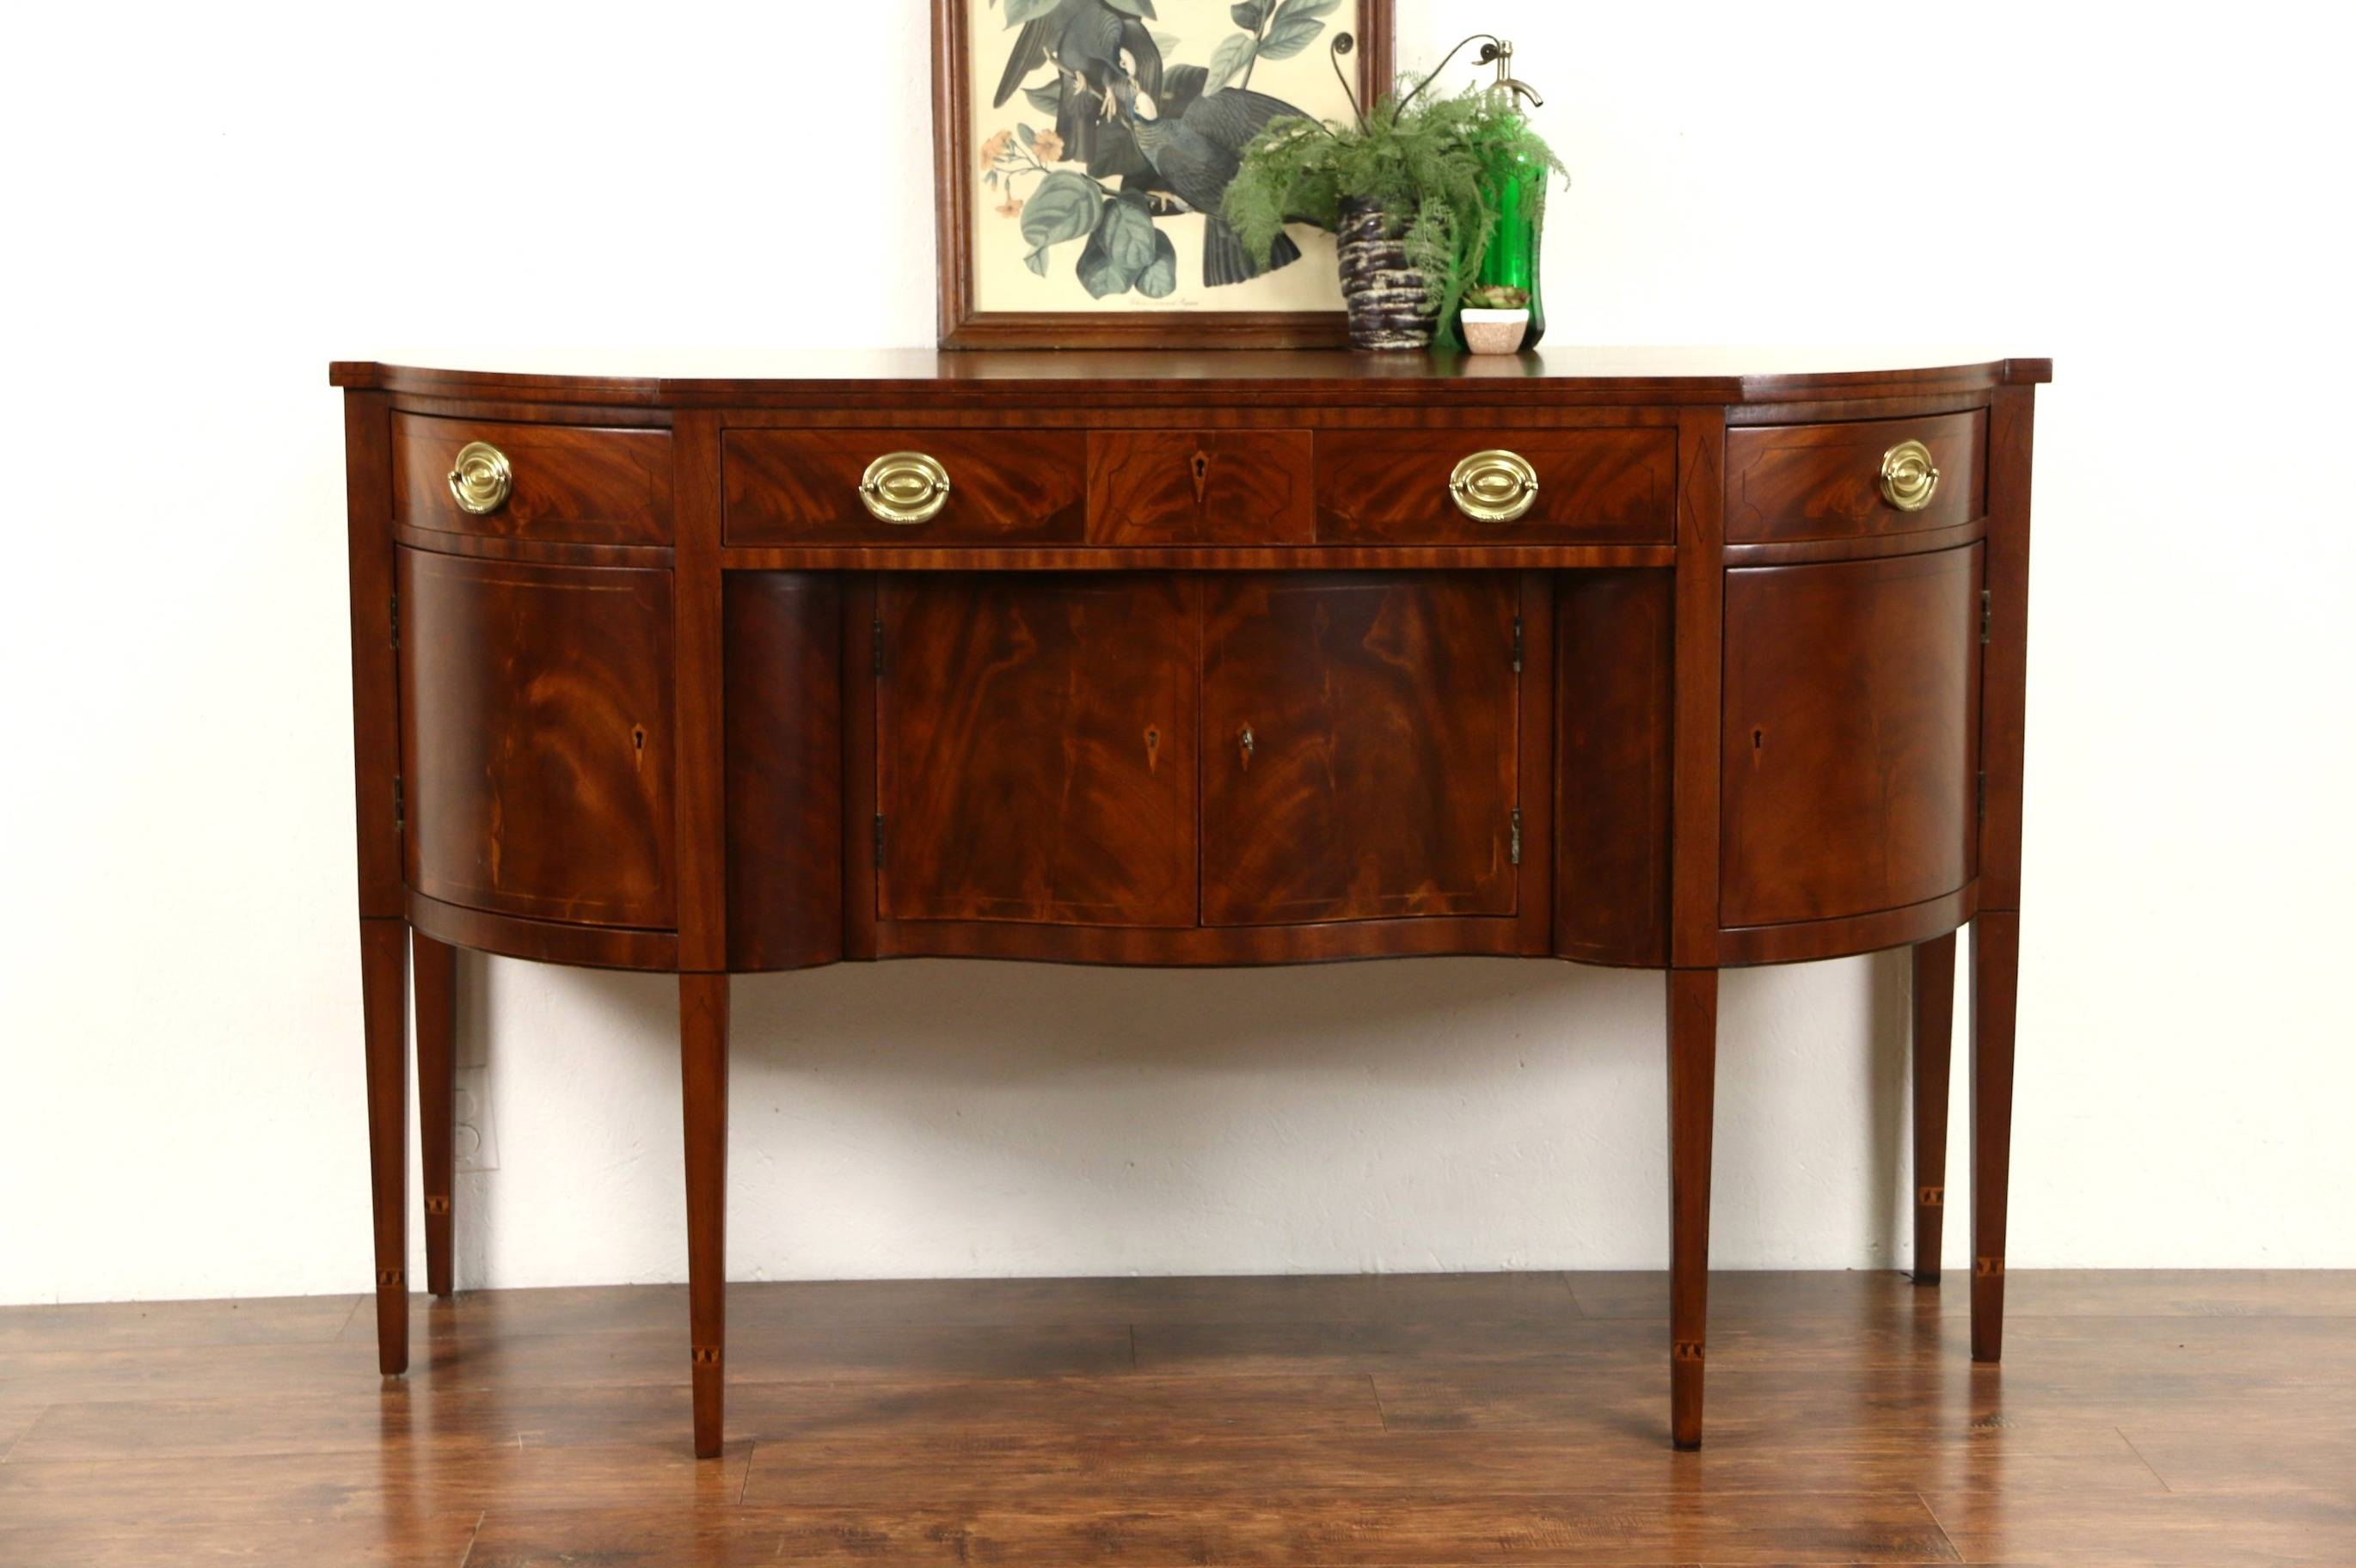 Sold - Henredon Natchez Collection Vintage Mahogany Sideboard with regard to Mahogany Sideboards (Image 11 of 15)